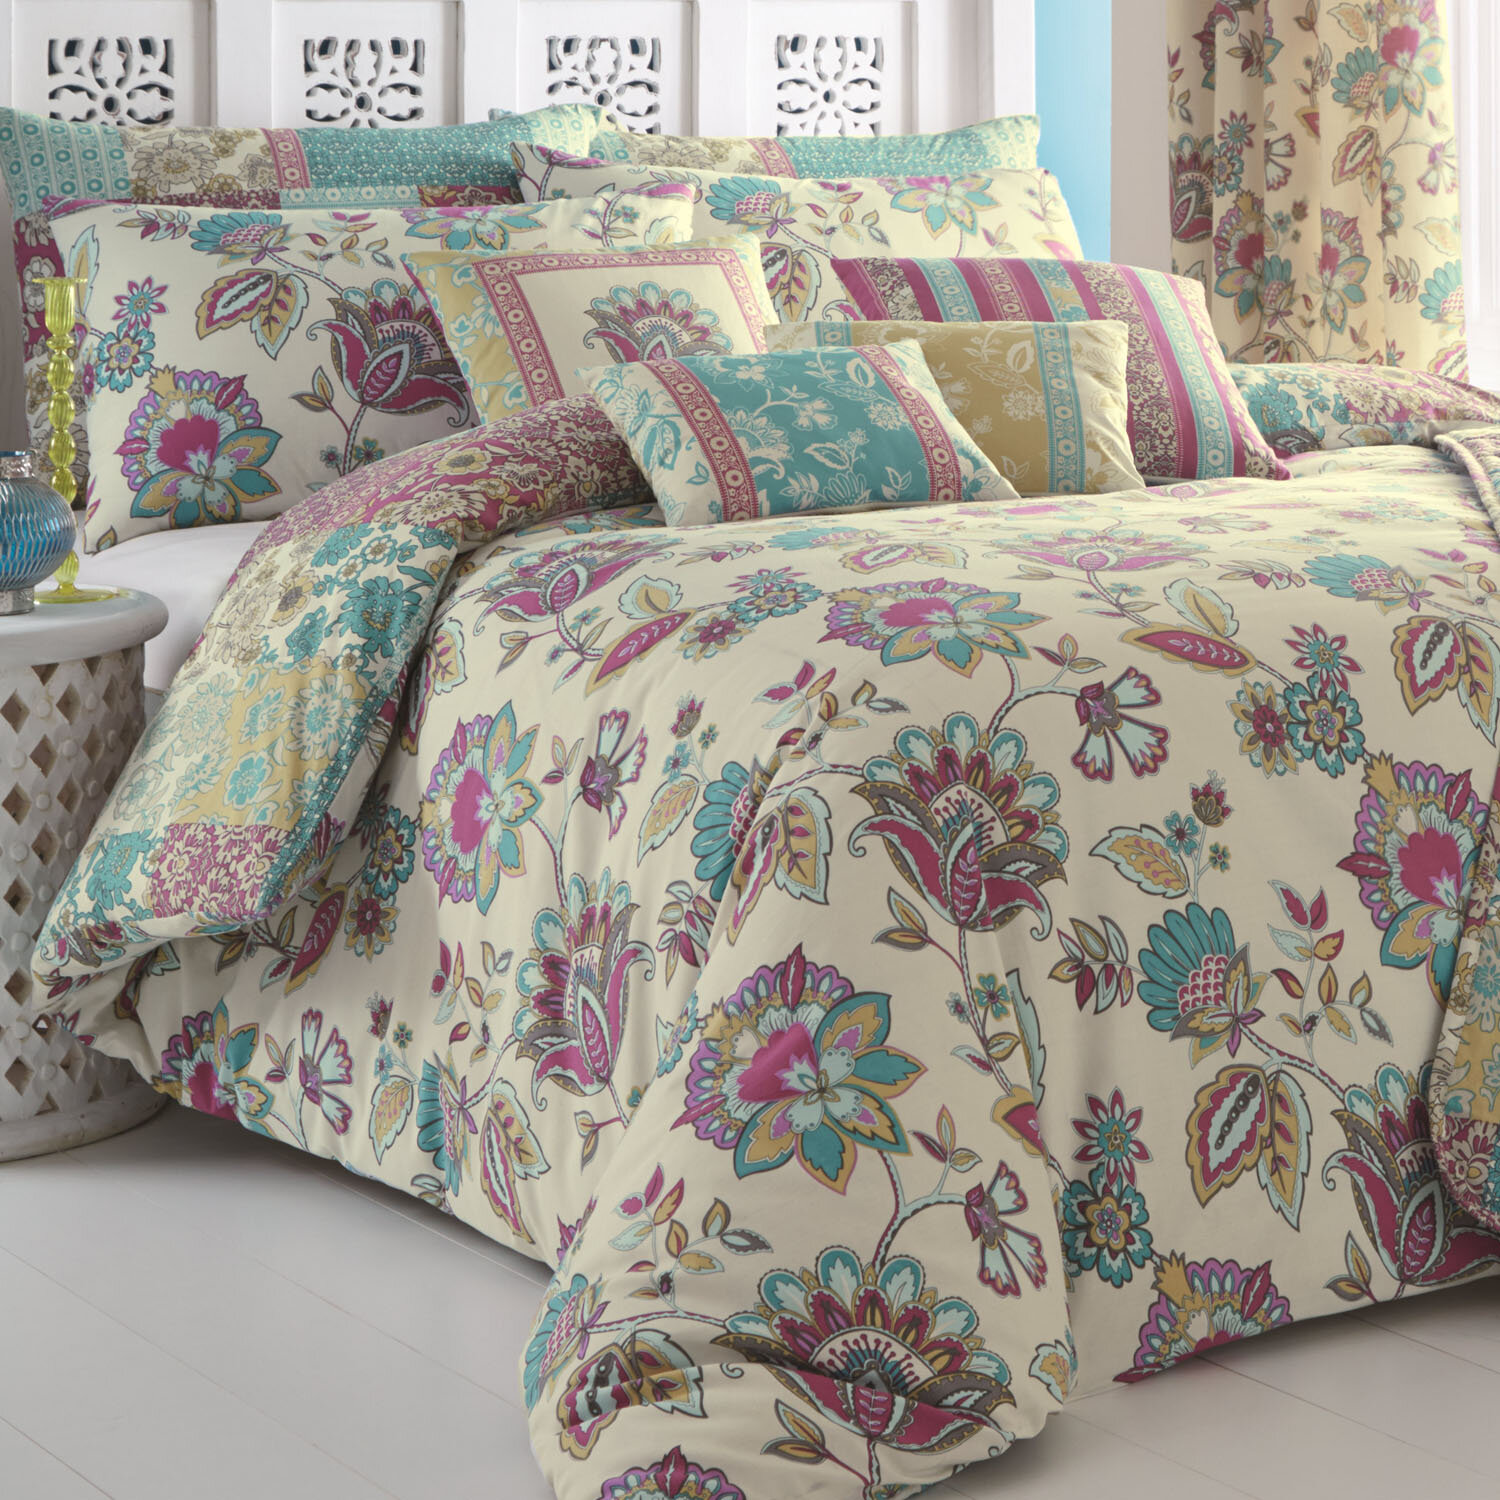 carousel duvet gray patchwork large cover designs